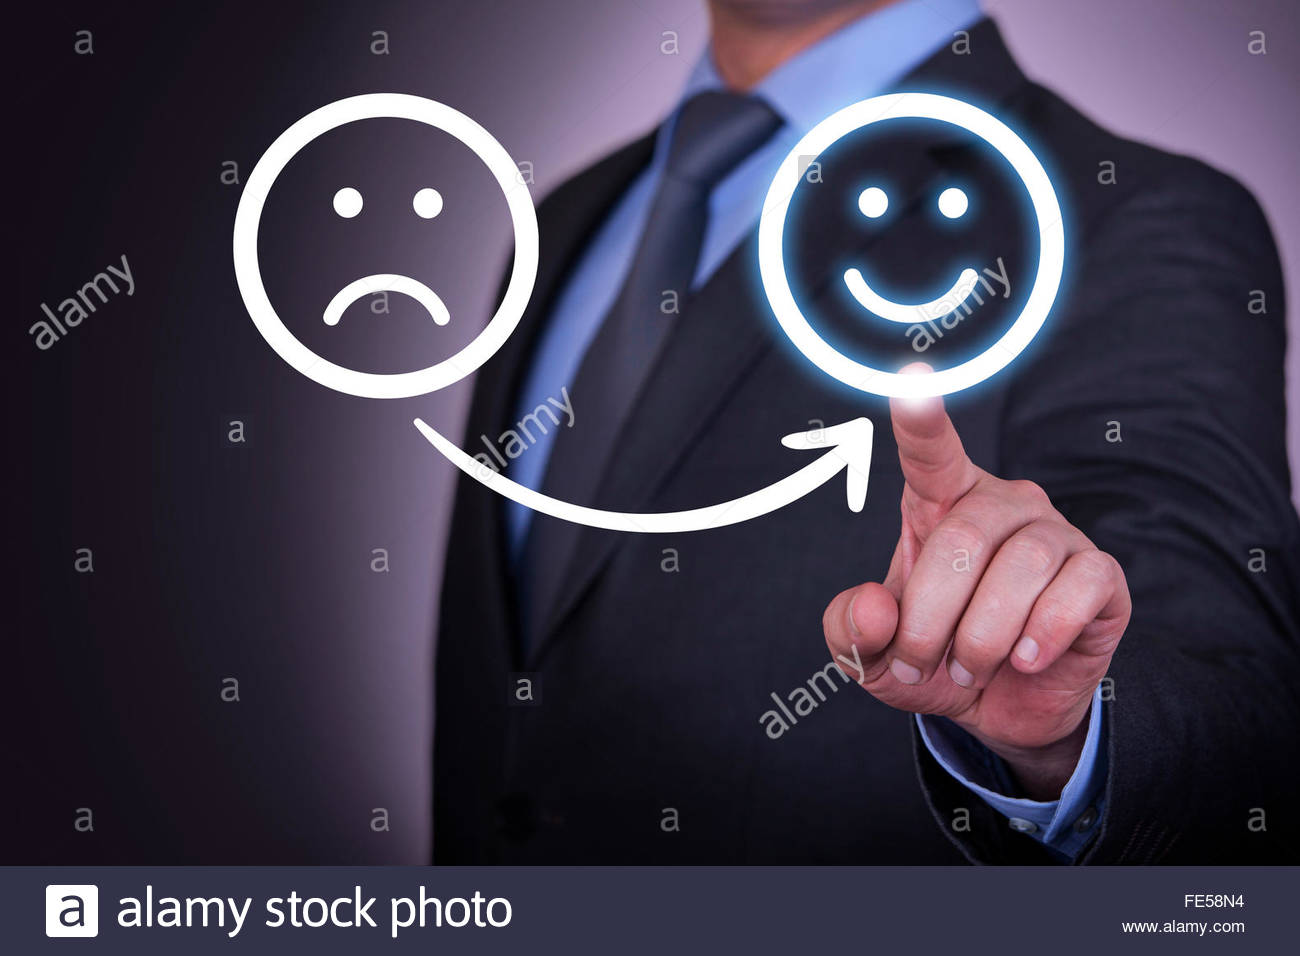 Unhappy and Happy Smiley on Screen - Stock Image